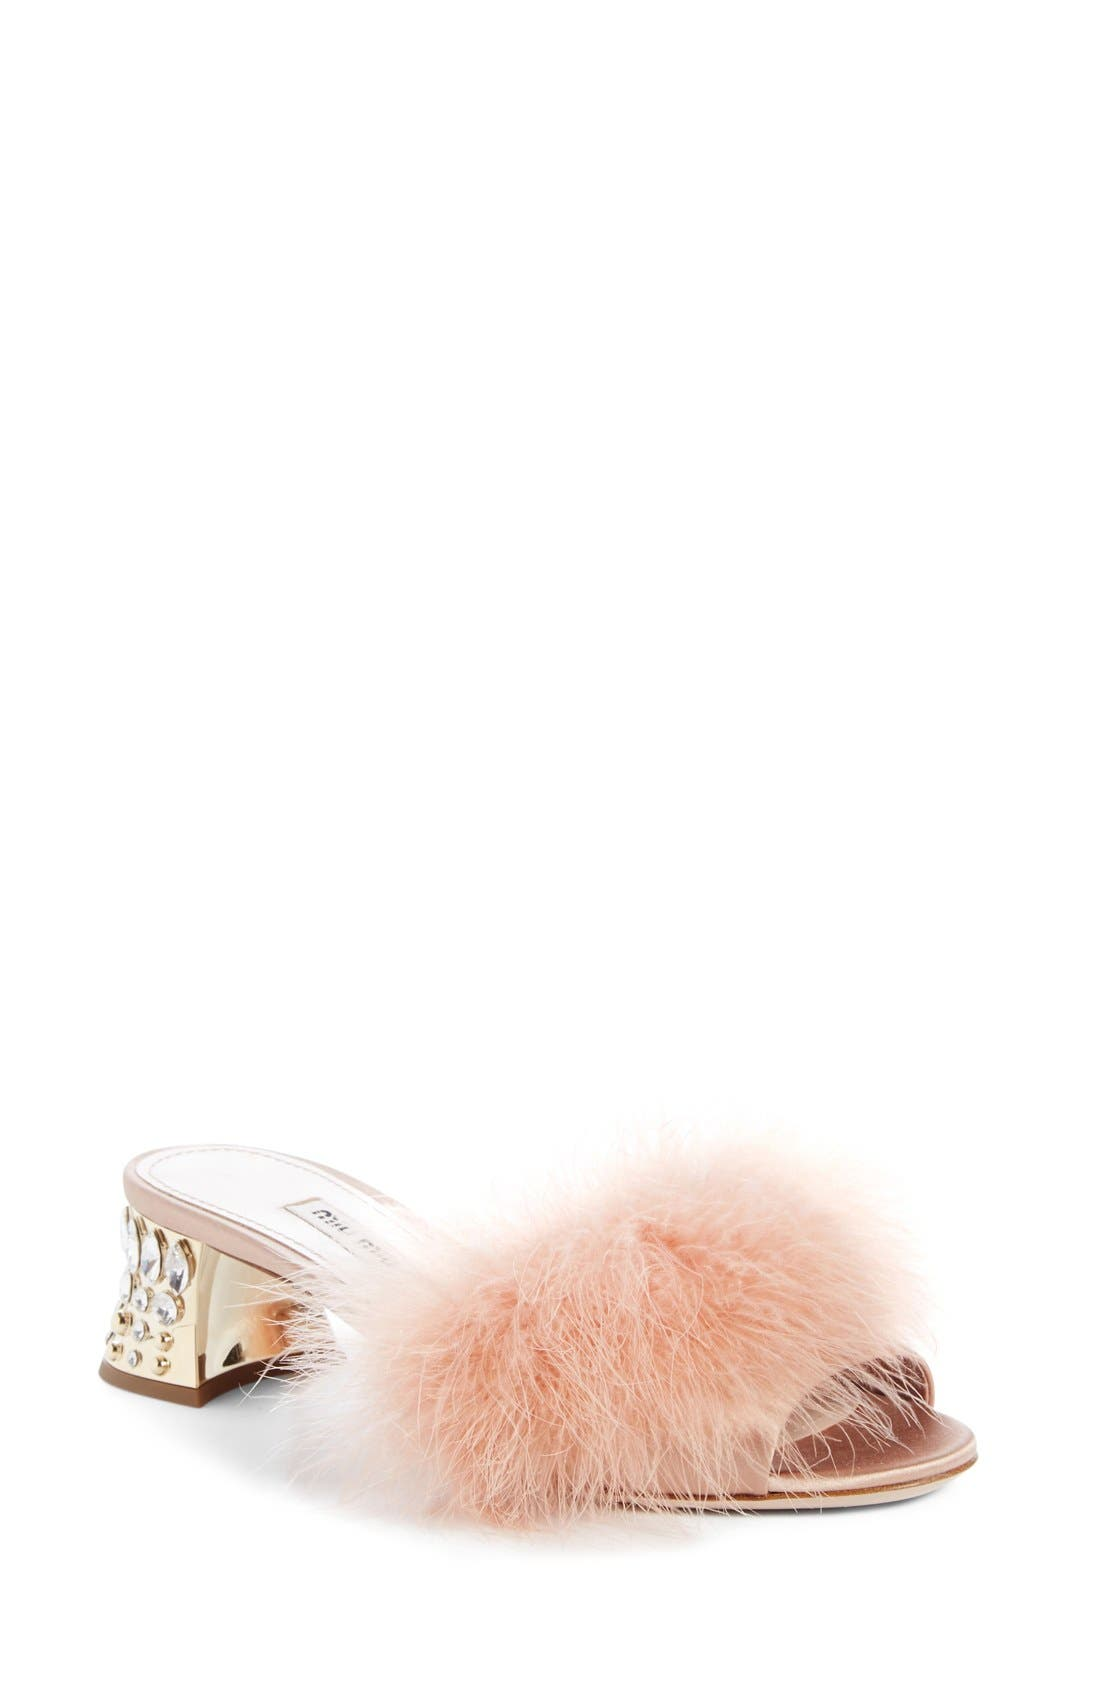 MIU MIU Feather Slide Sandal